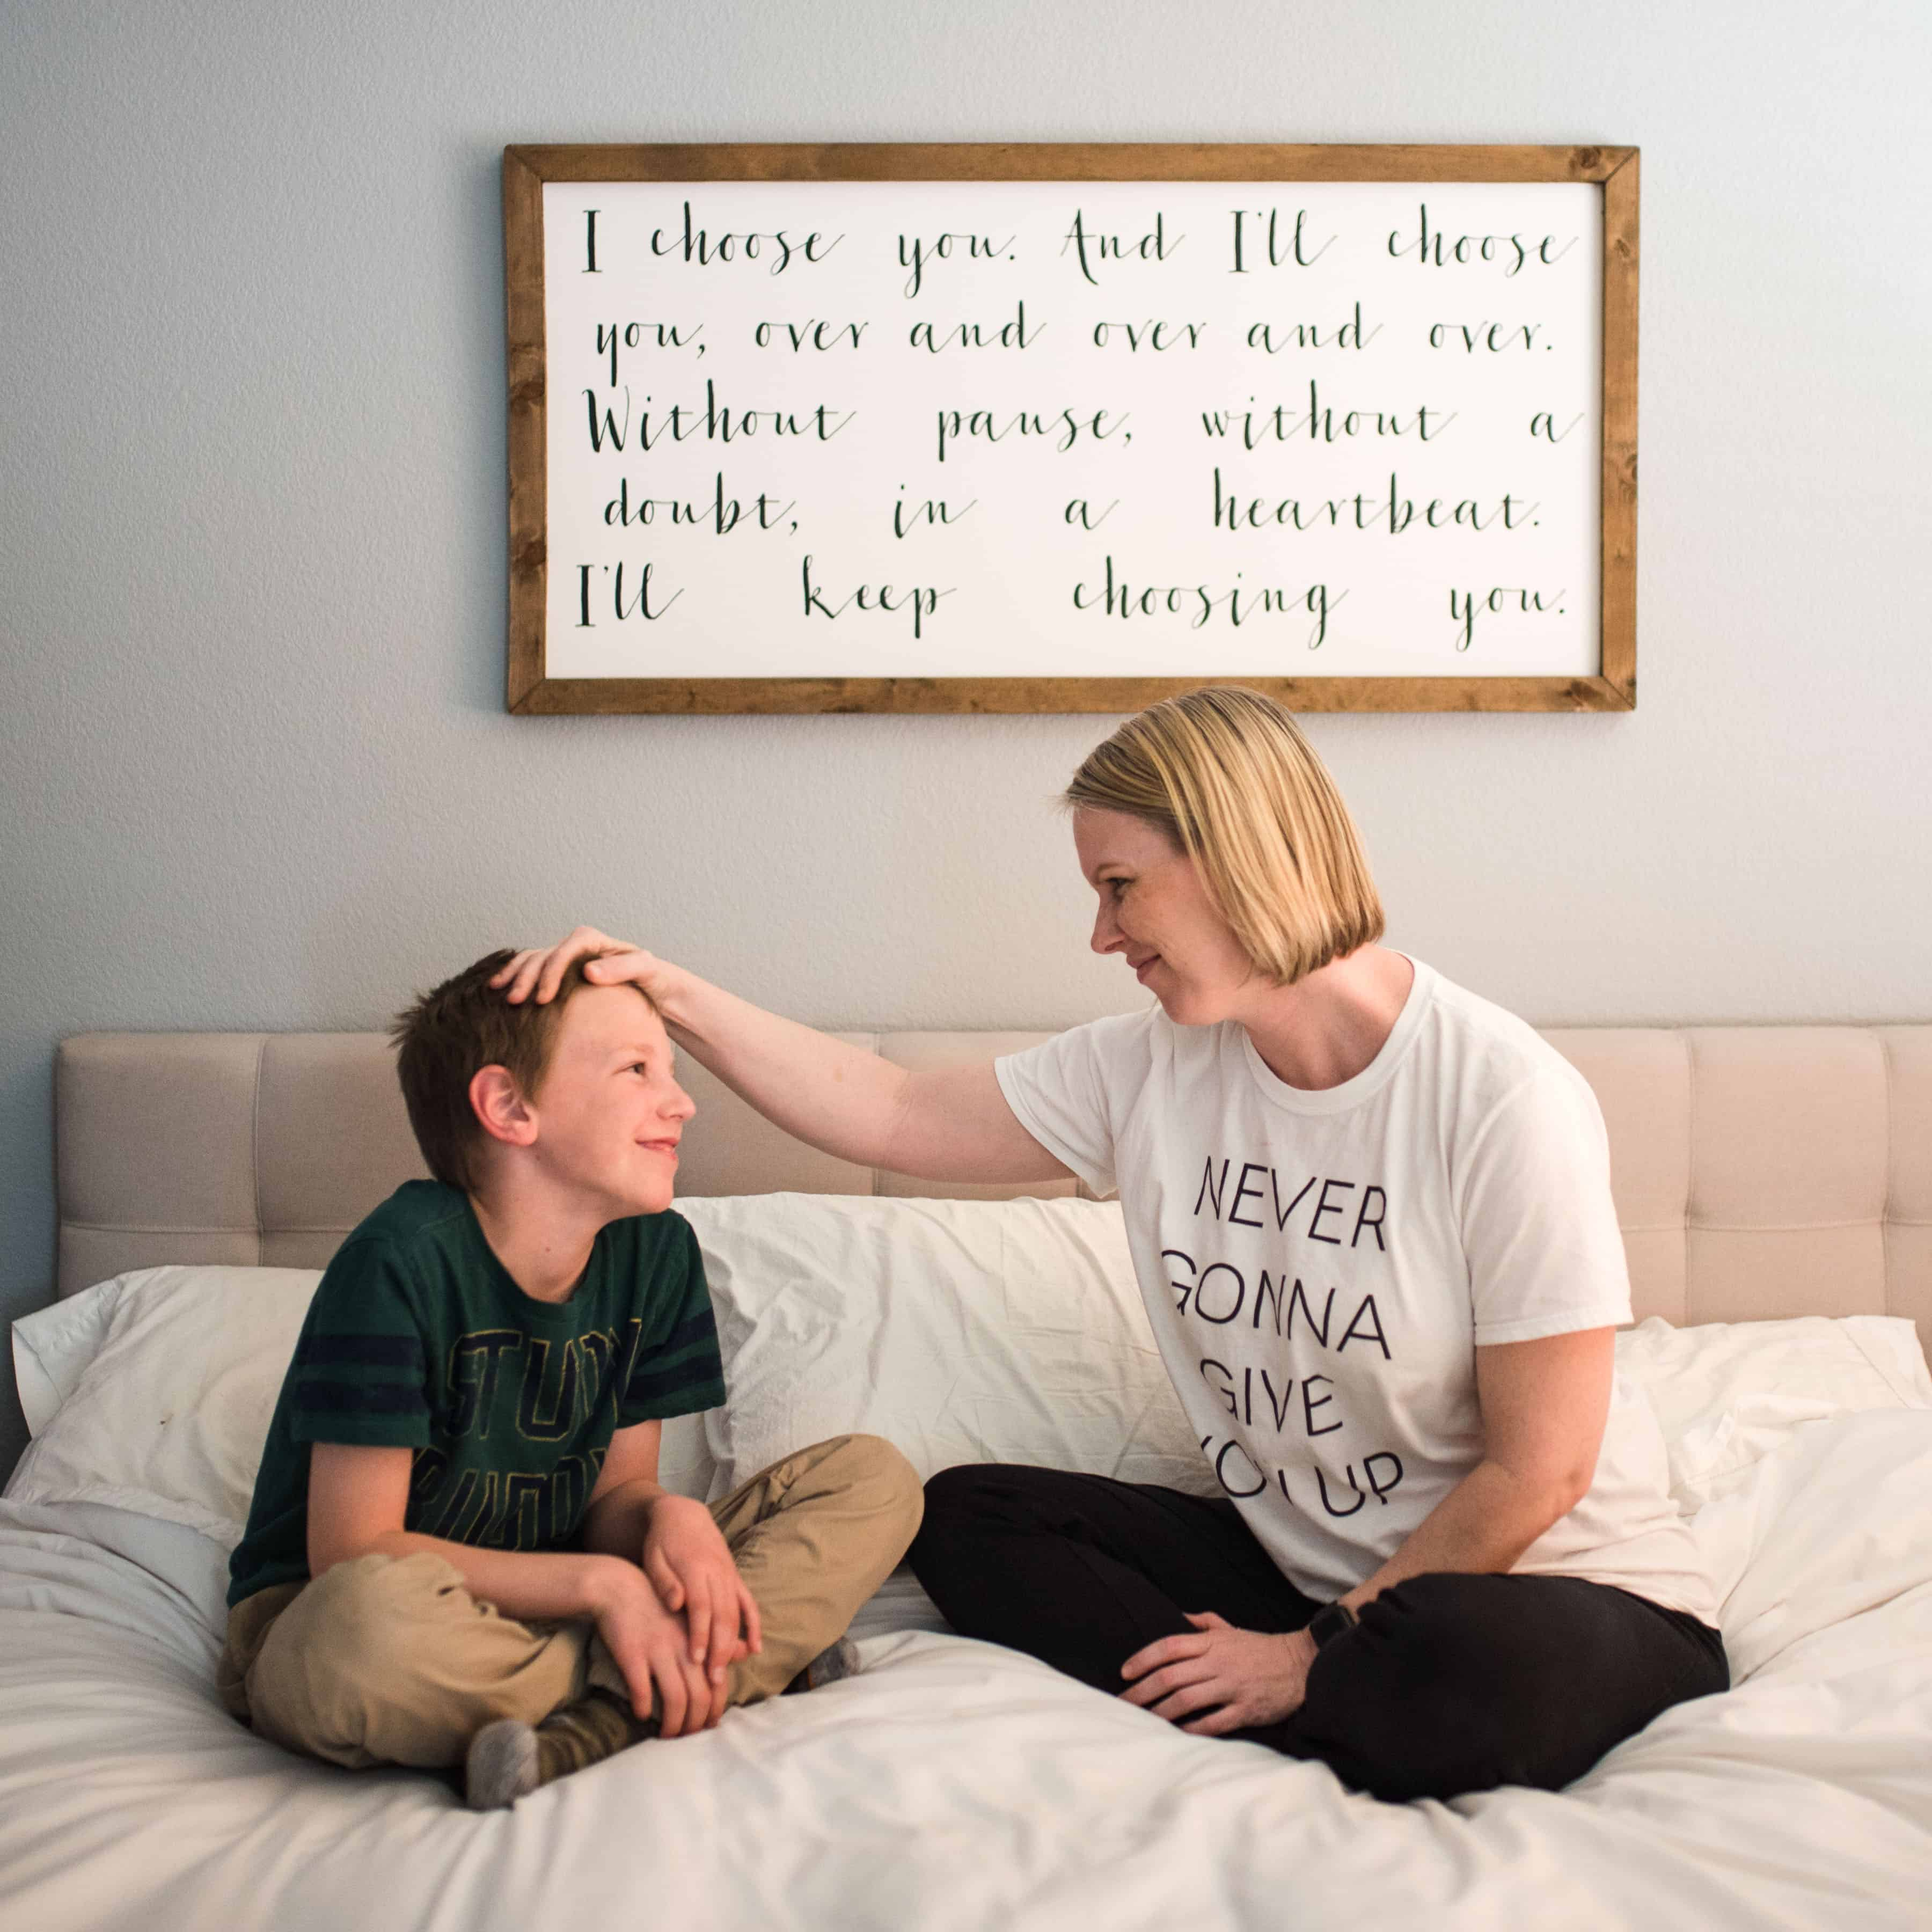 Mom and son sitting on bed talking about vaping